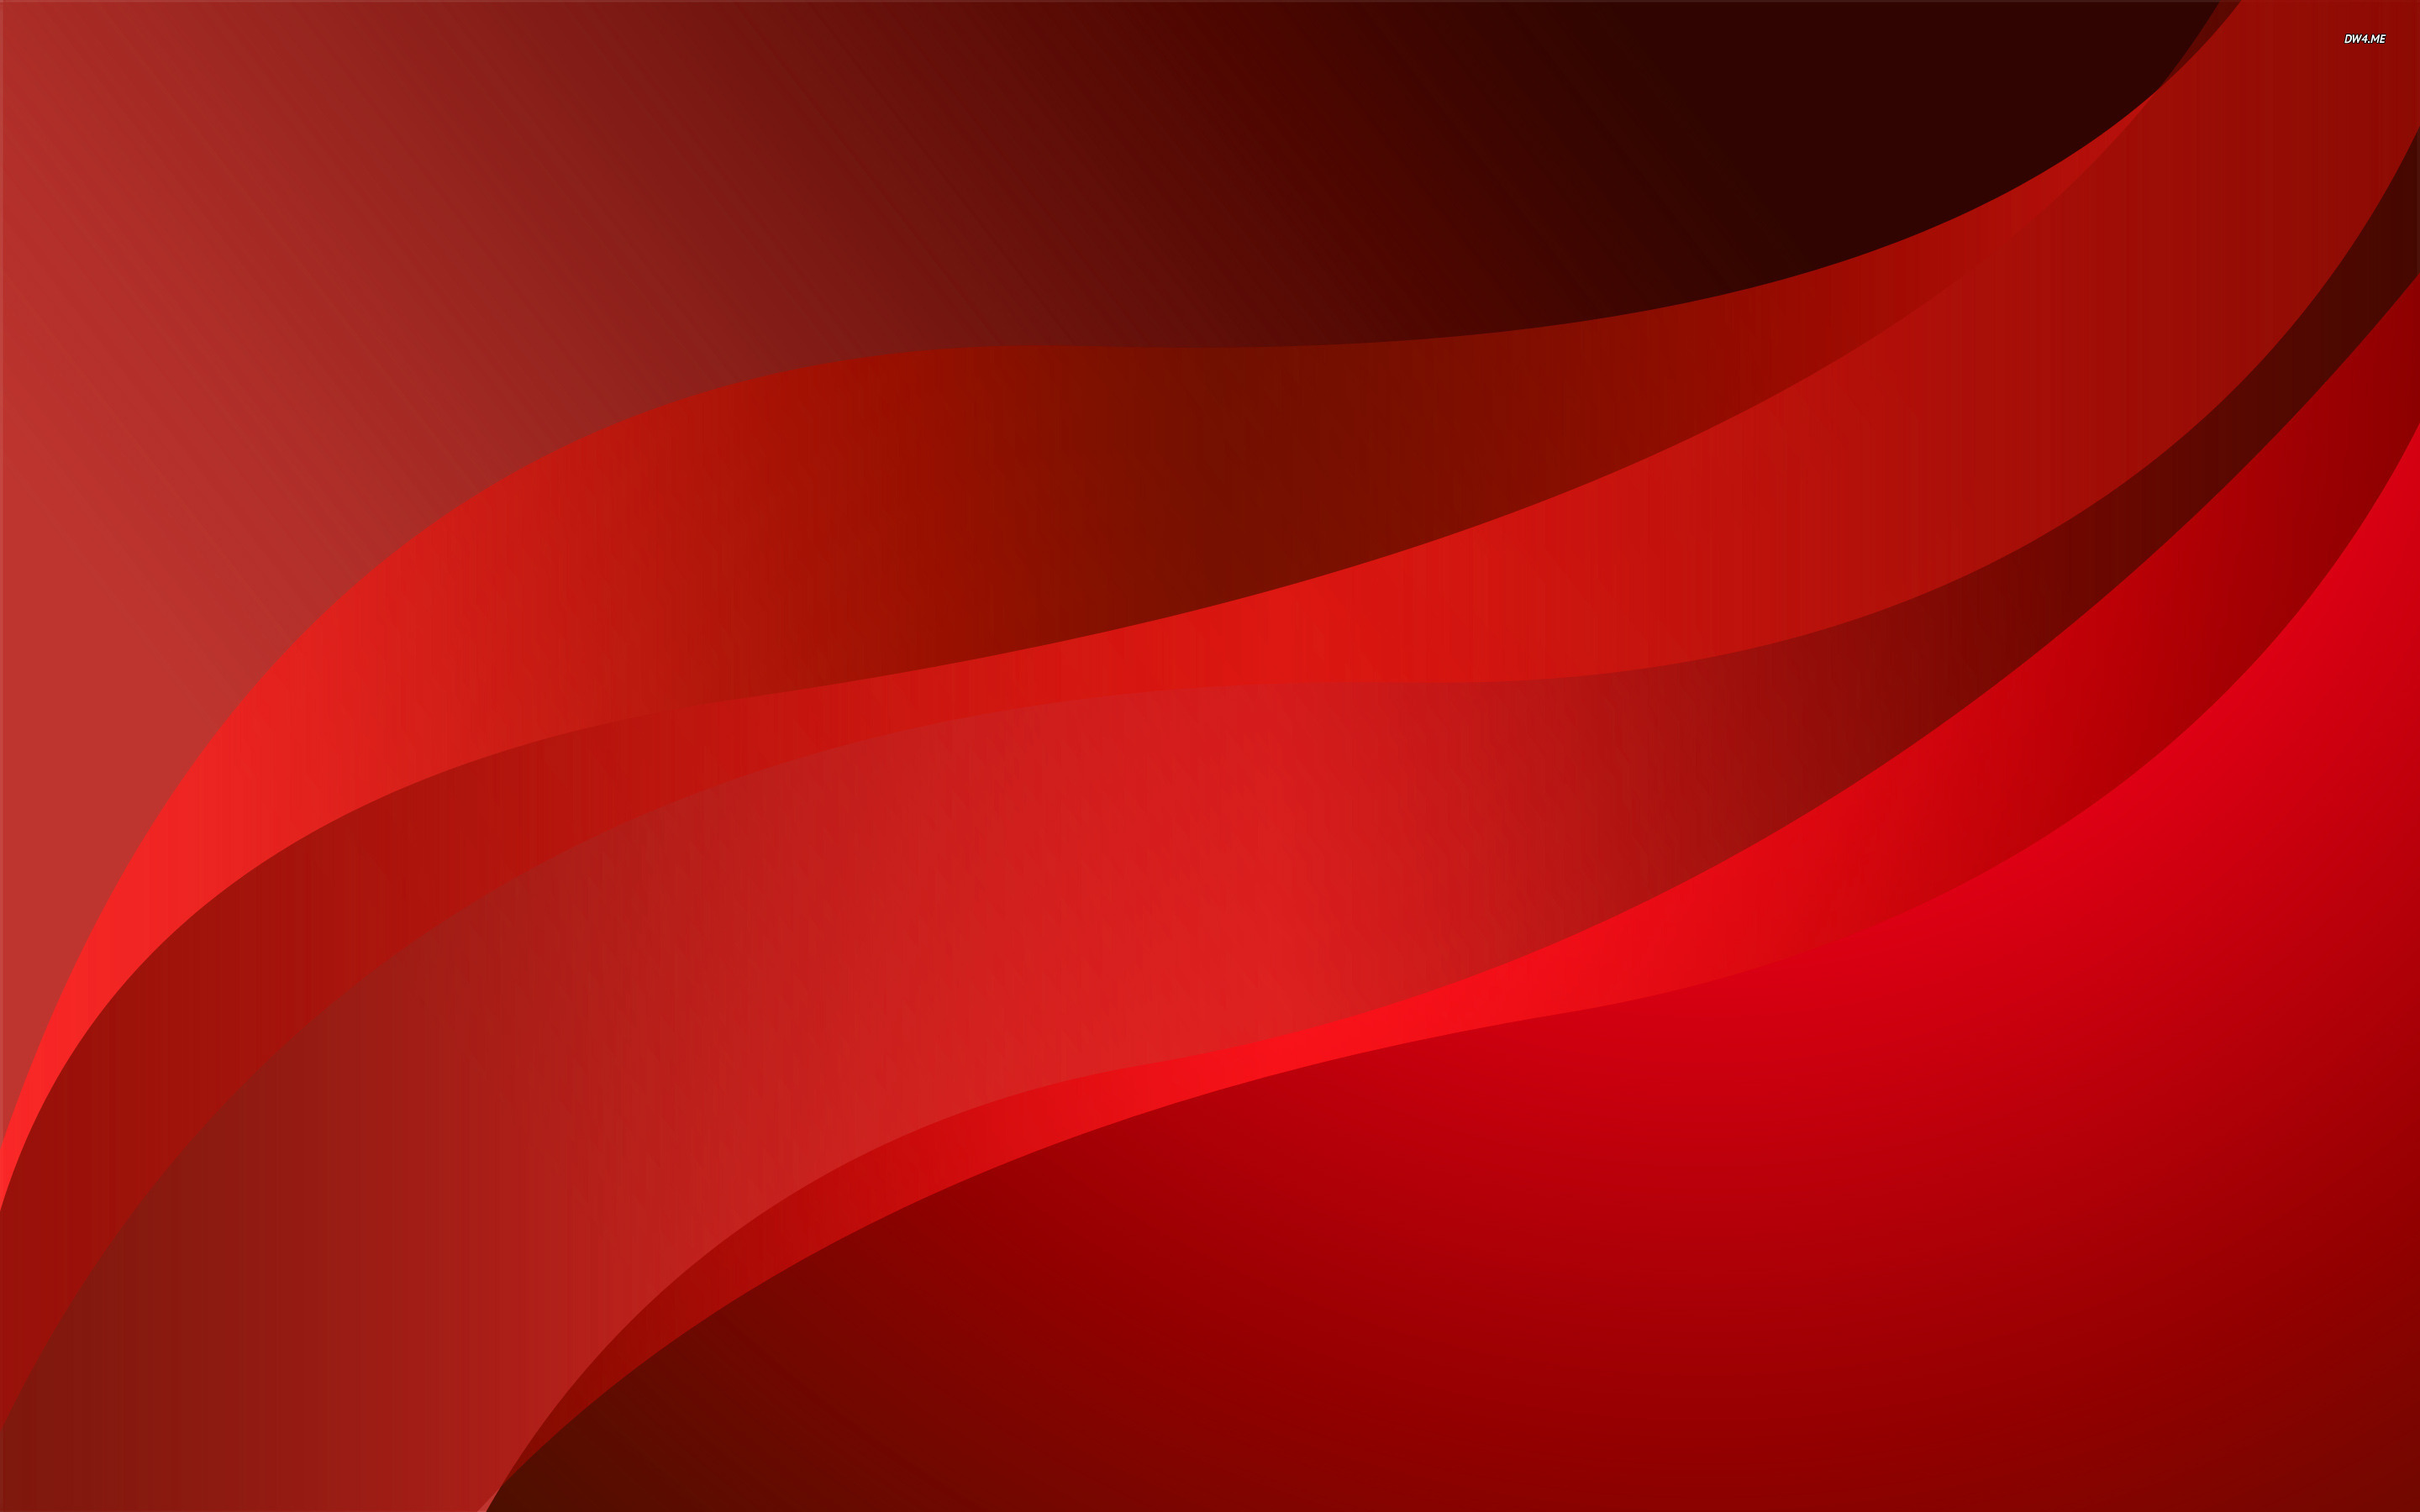 Red Wallpaper 753 Images Wallpapers